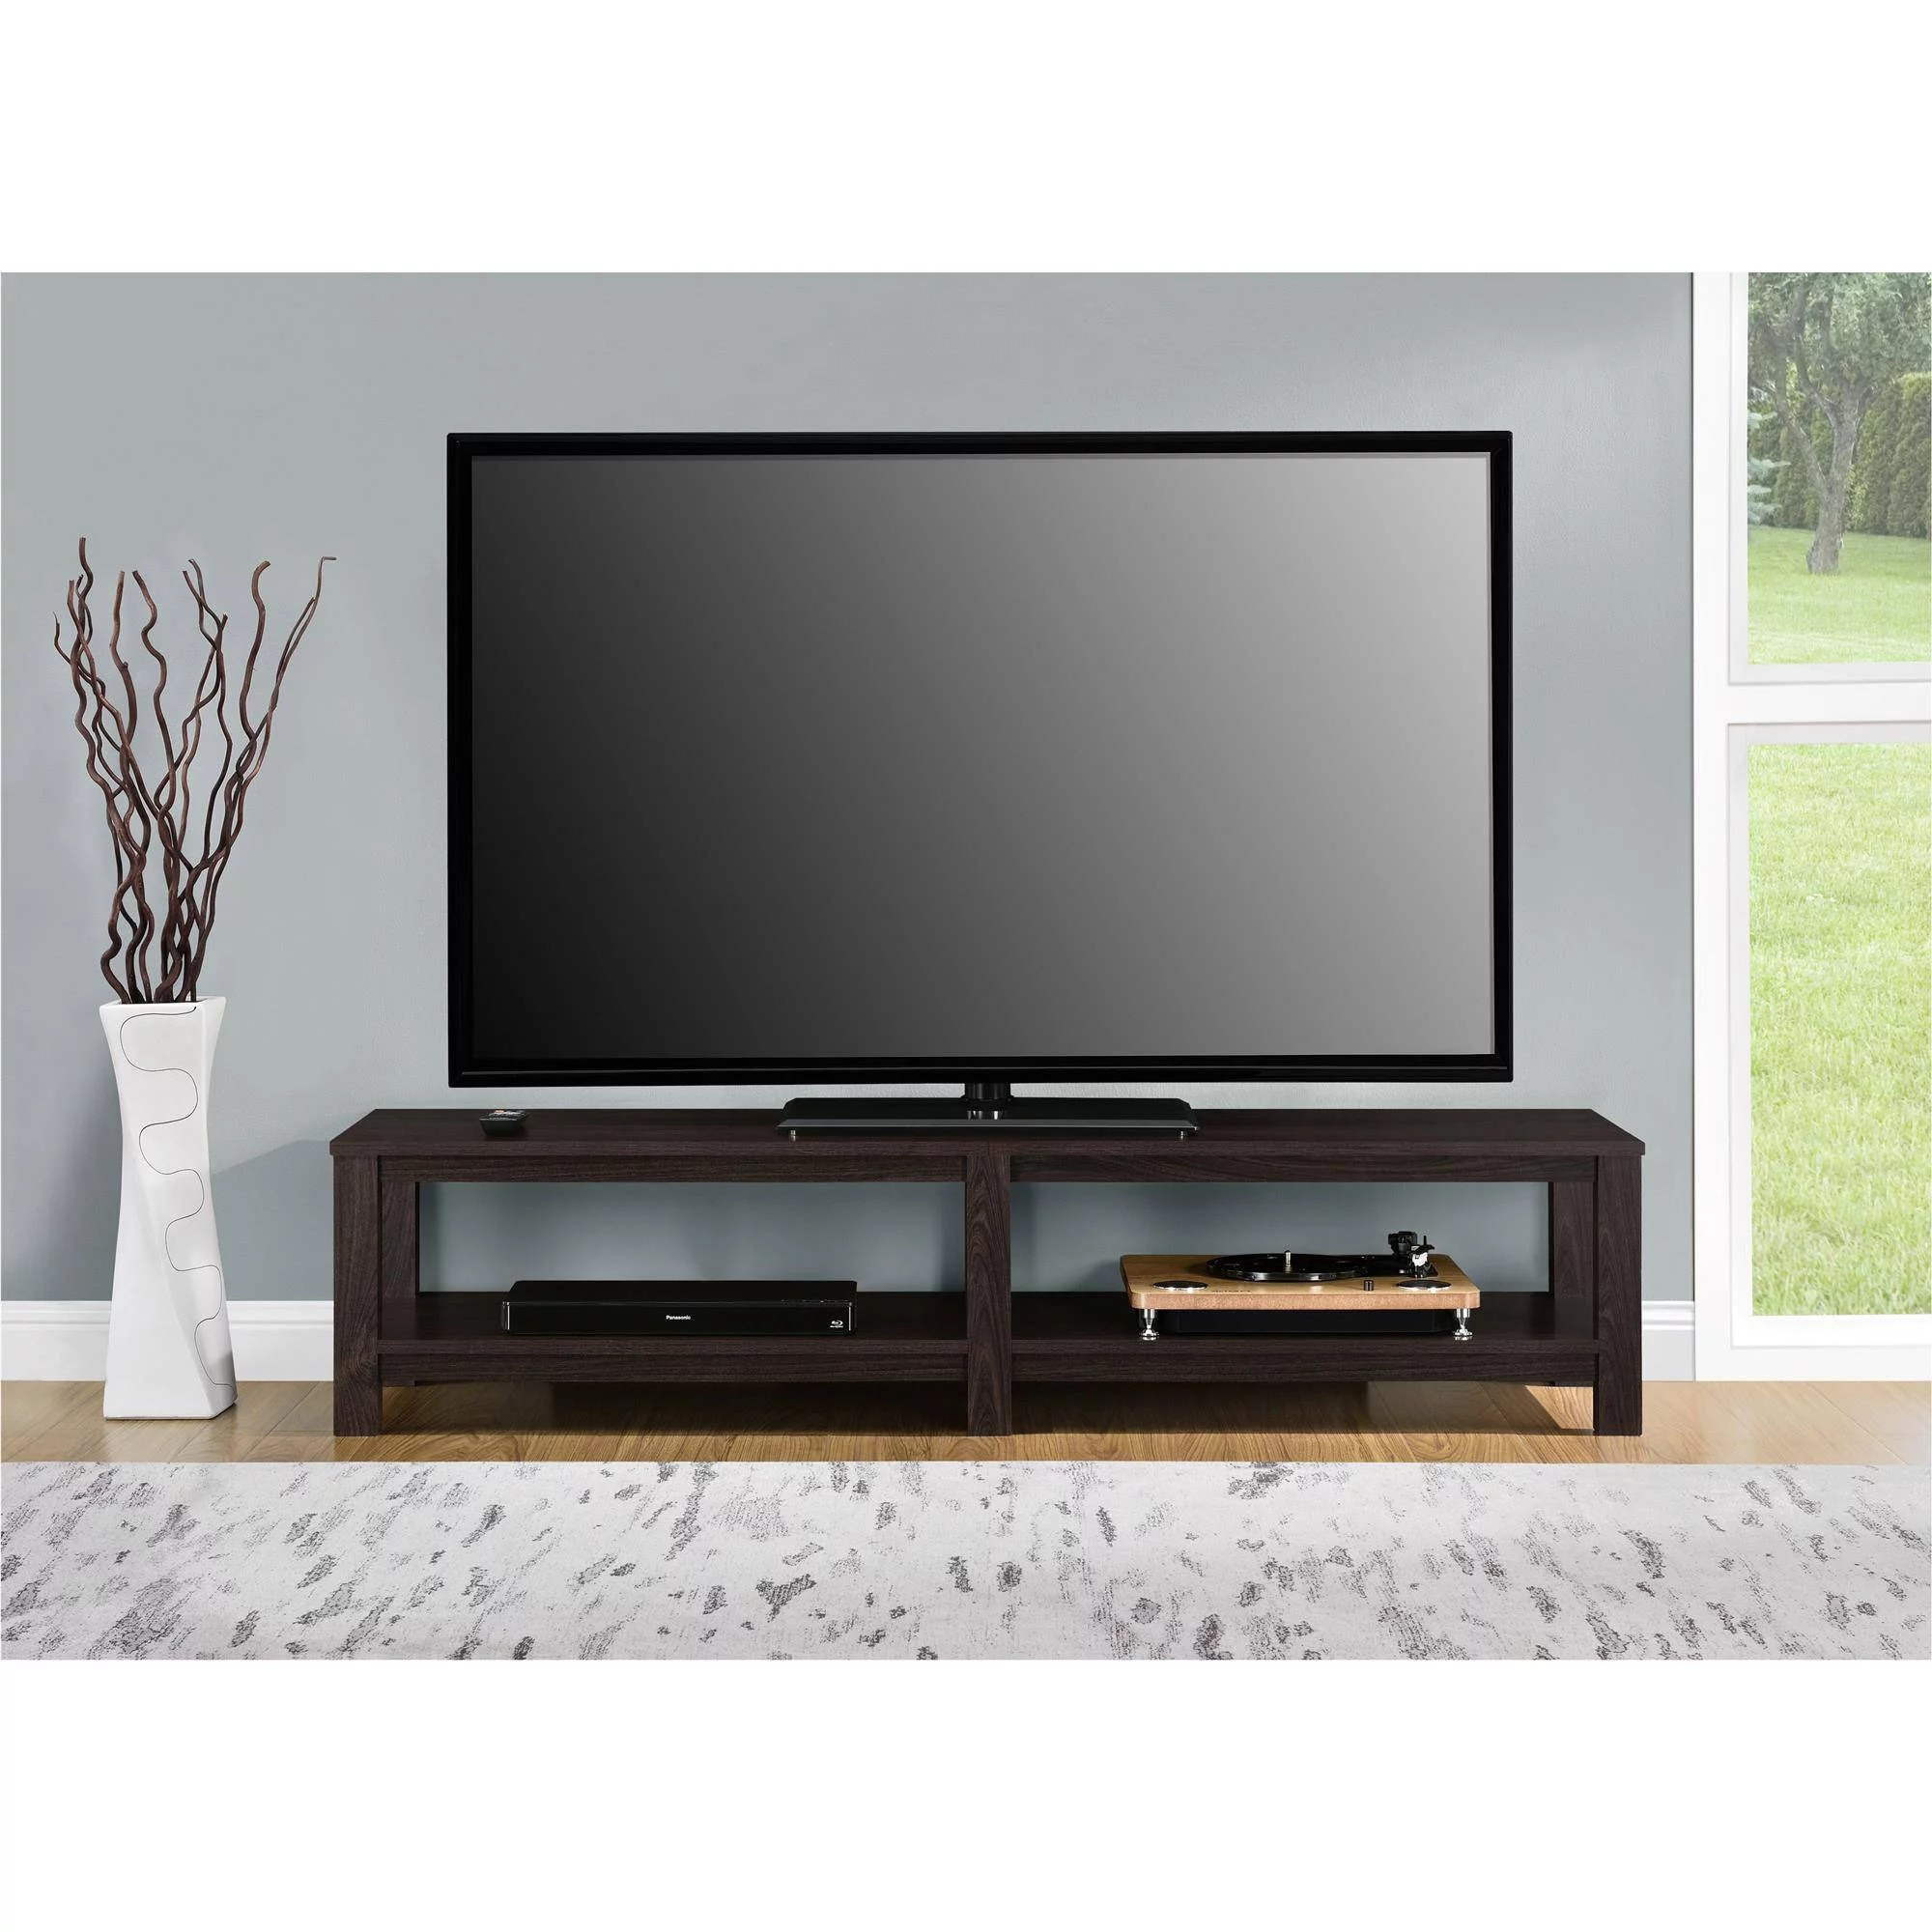 Tv 65 Inch Tv Stand 65 Inch Flat Screen Entertainment Media Home